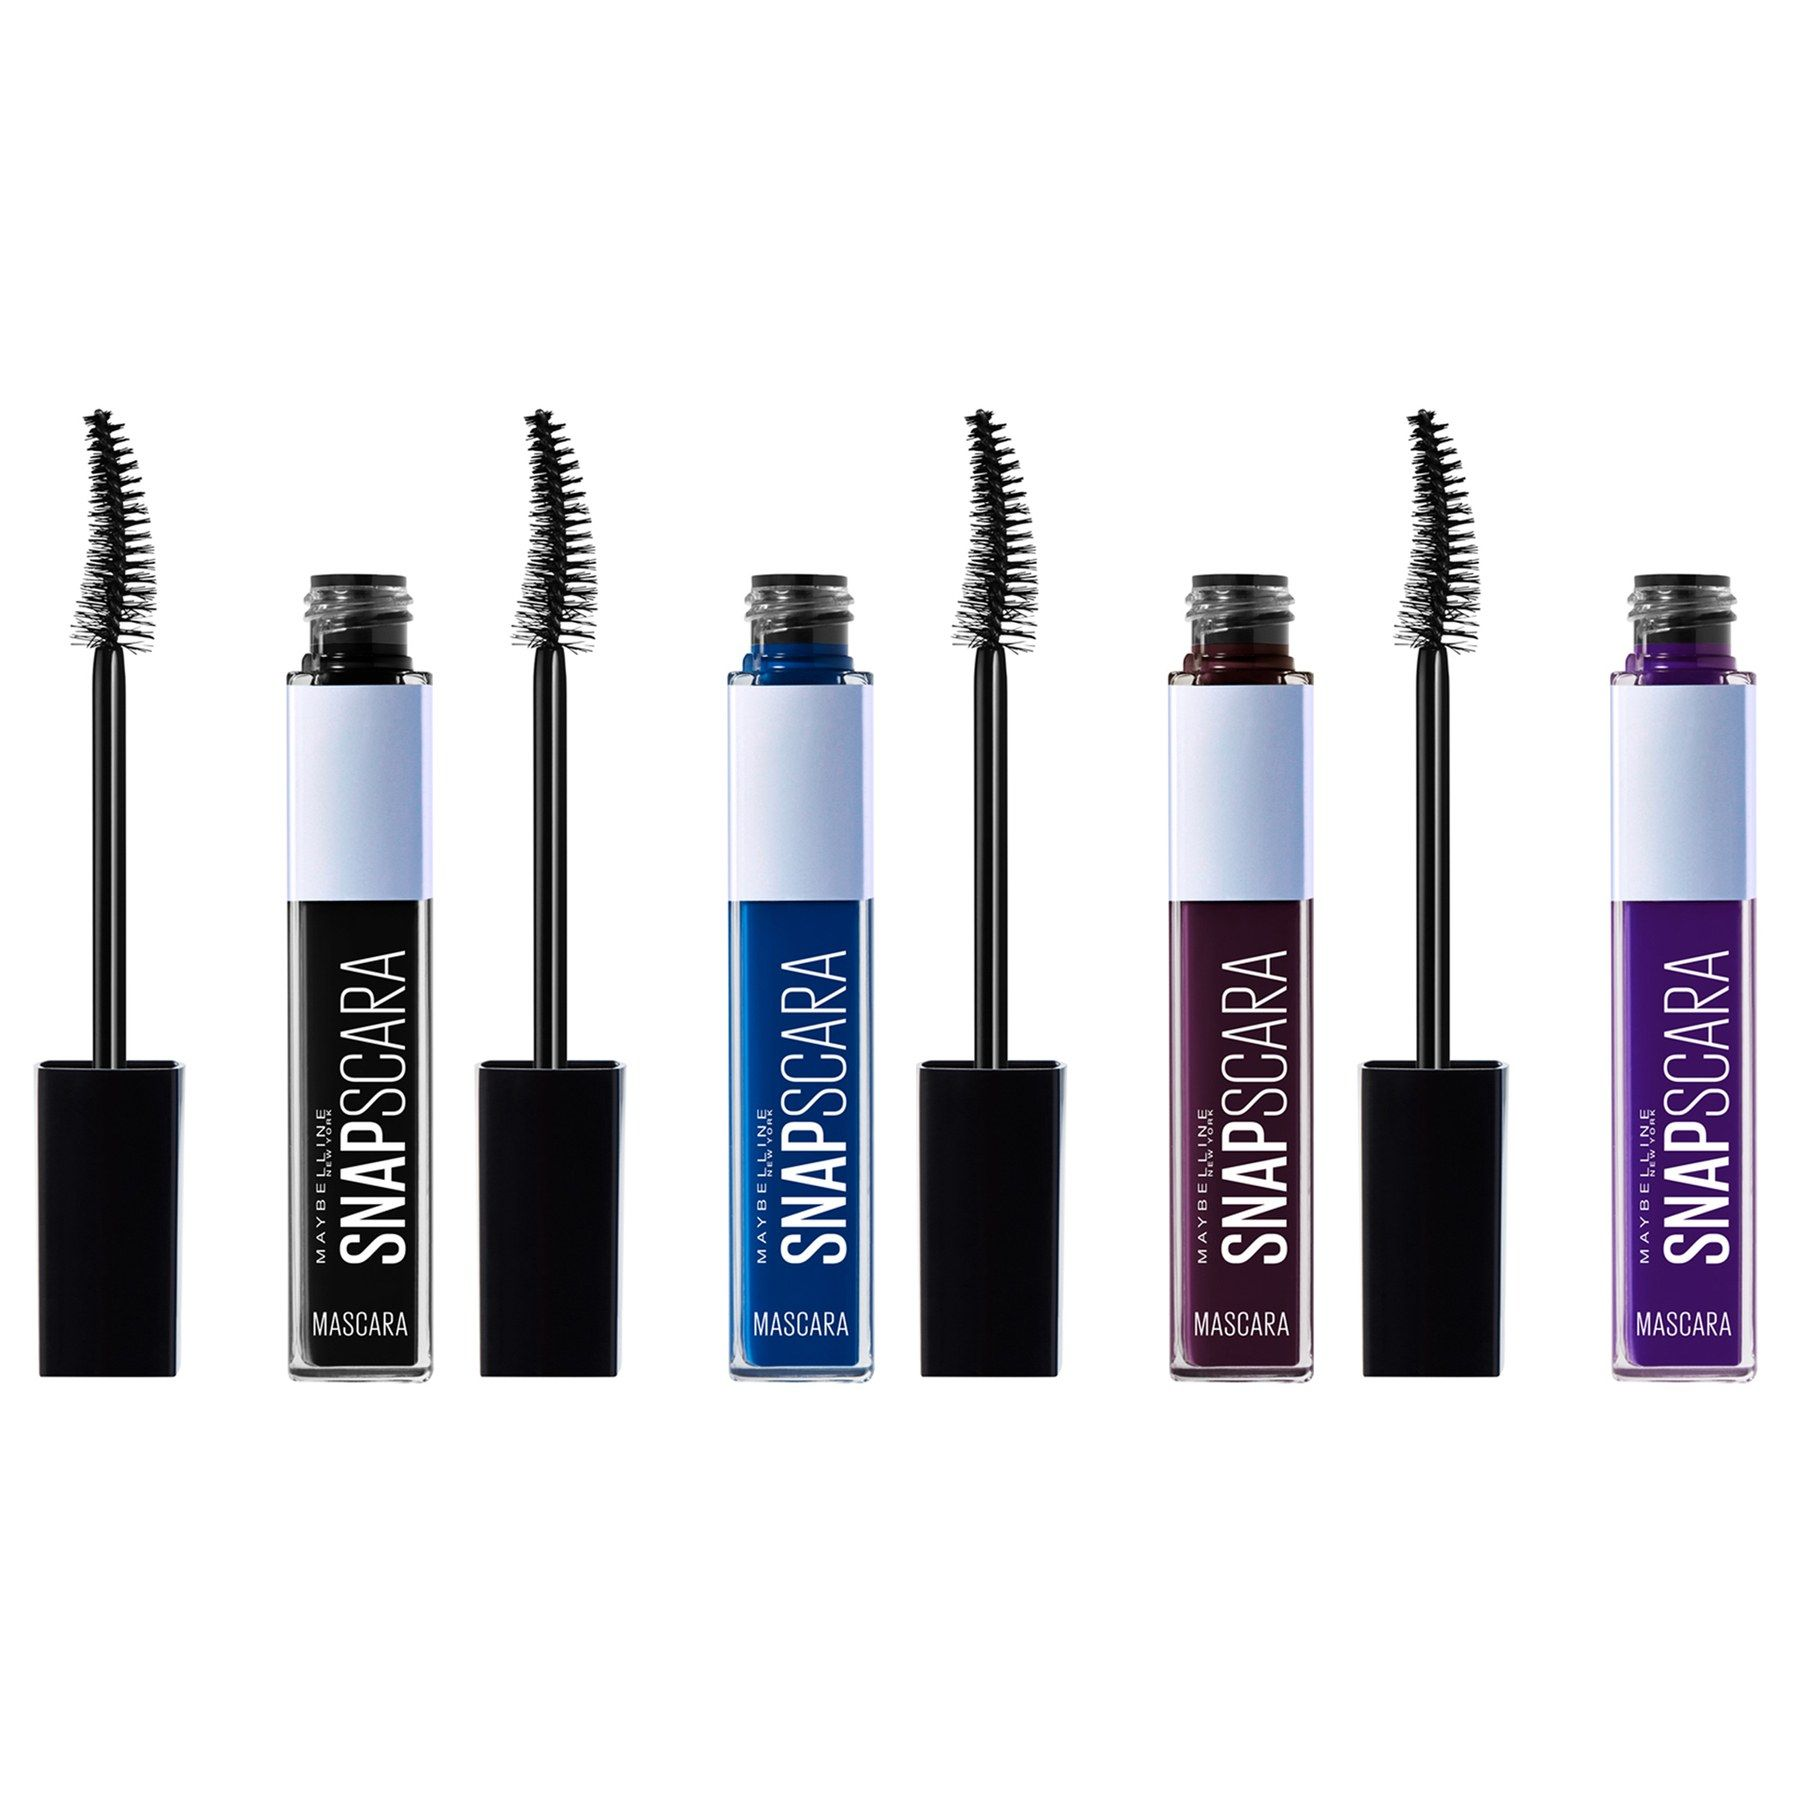 bcfca3544d2 Maybelline knows a thing or two about mascara, and their newest Snapscara  formula is one of their best yet. The thin, flexible pigment tints your  lashes and ...